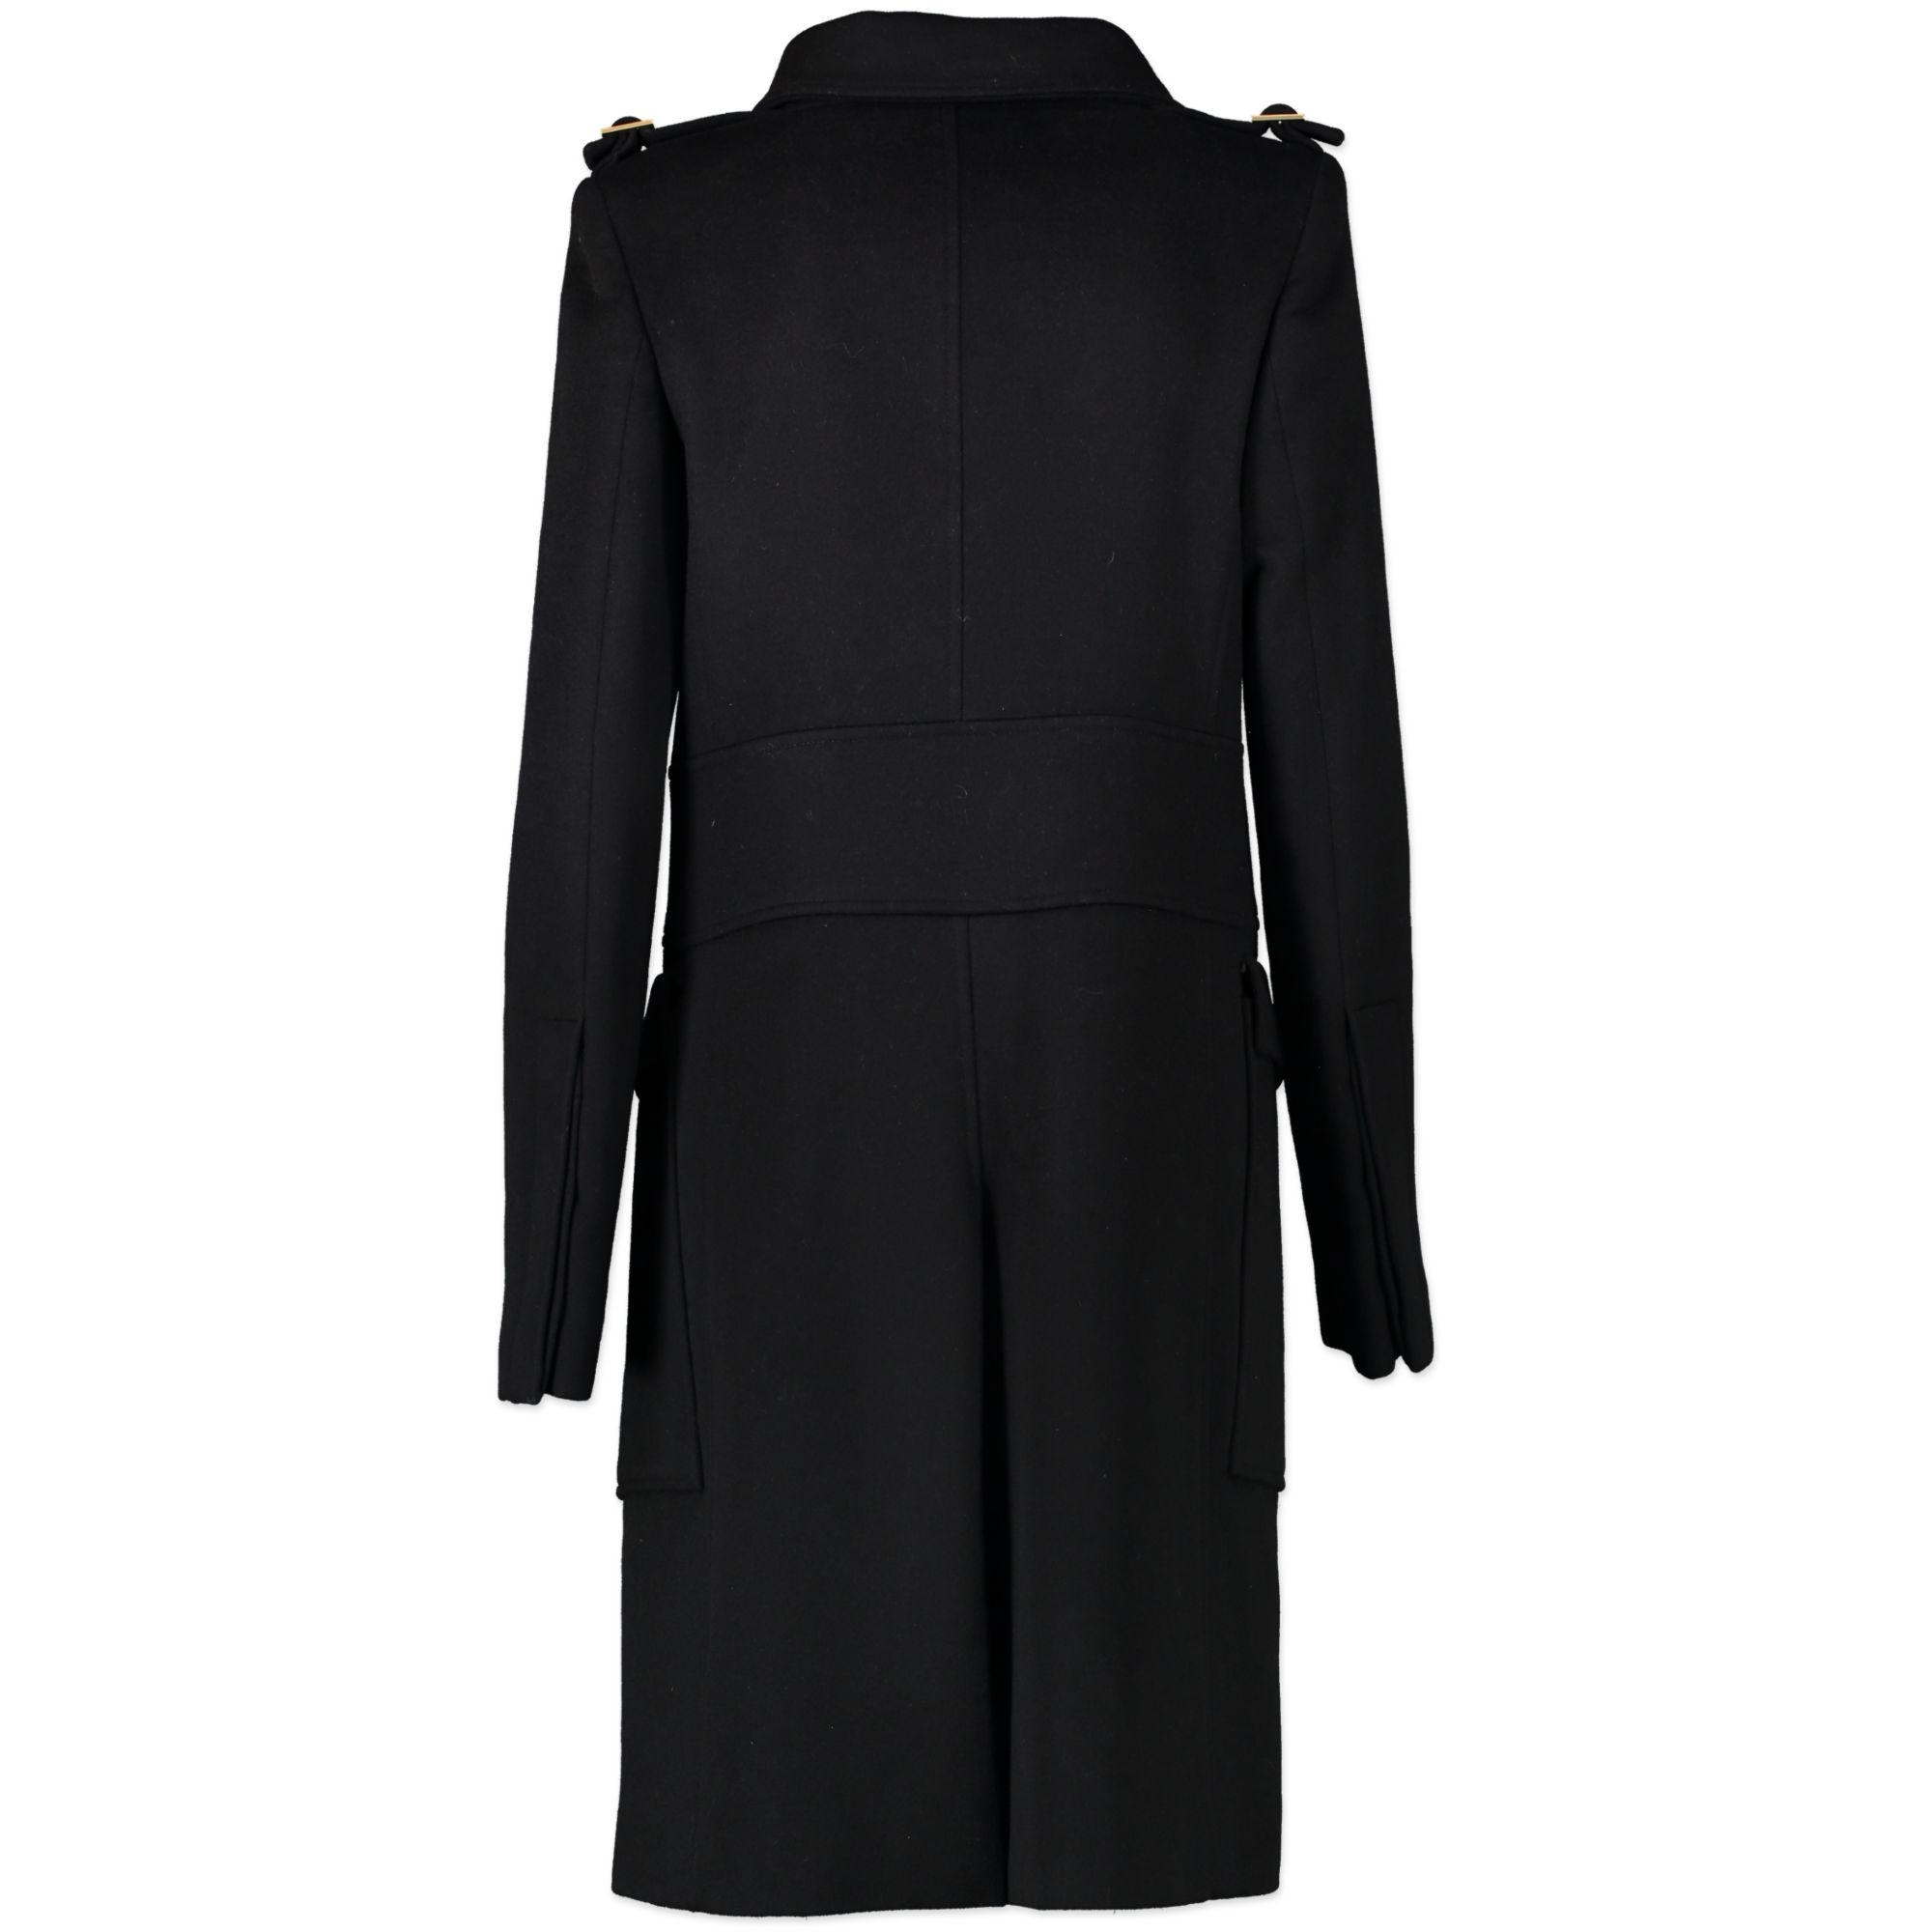 We buy and sell your authentic Gucci Black Wool Coat - Size 40